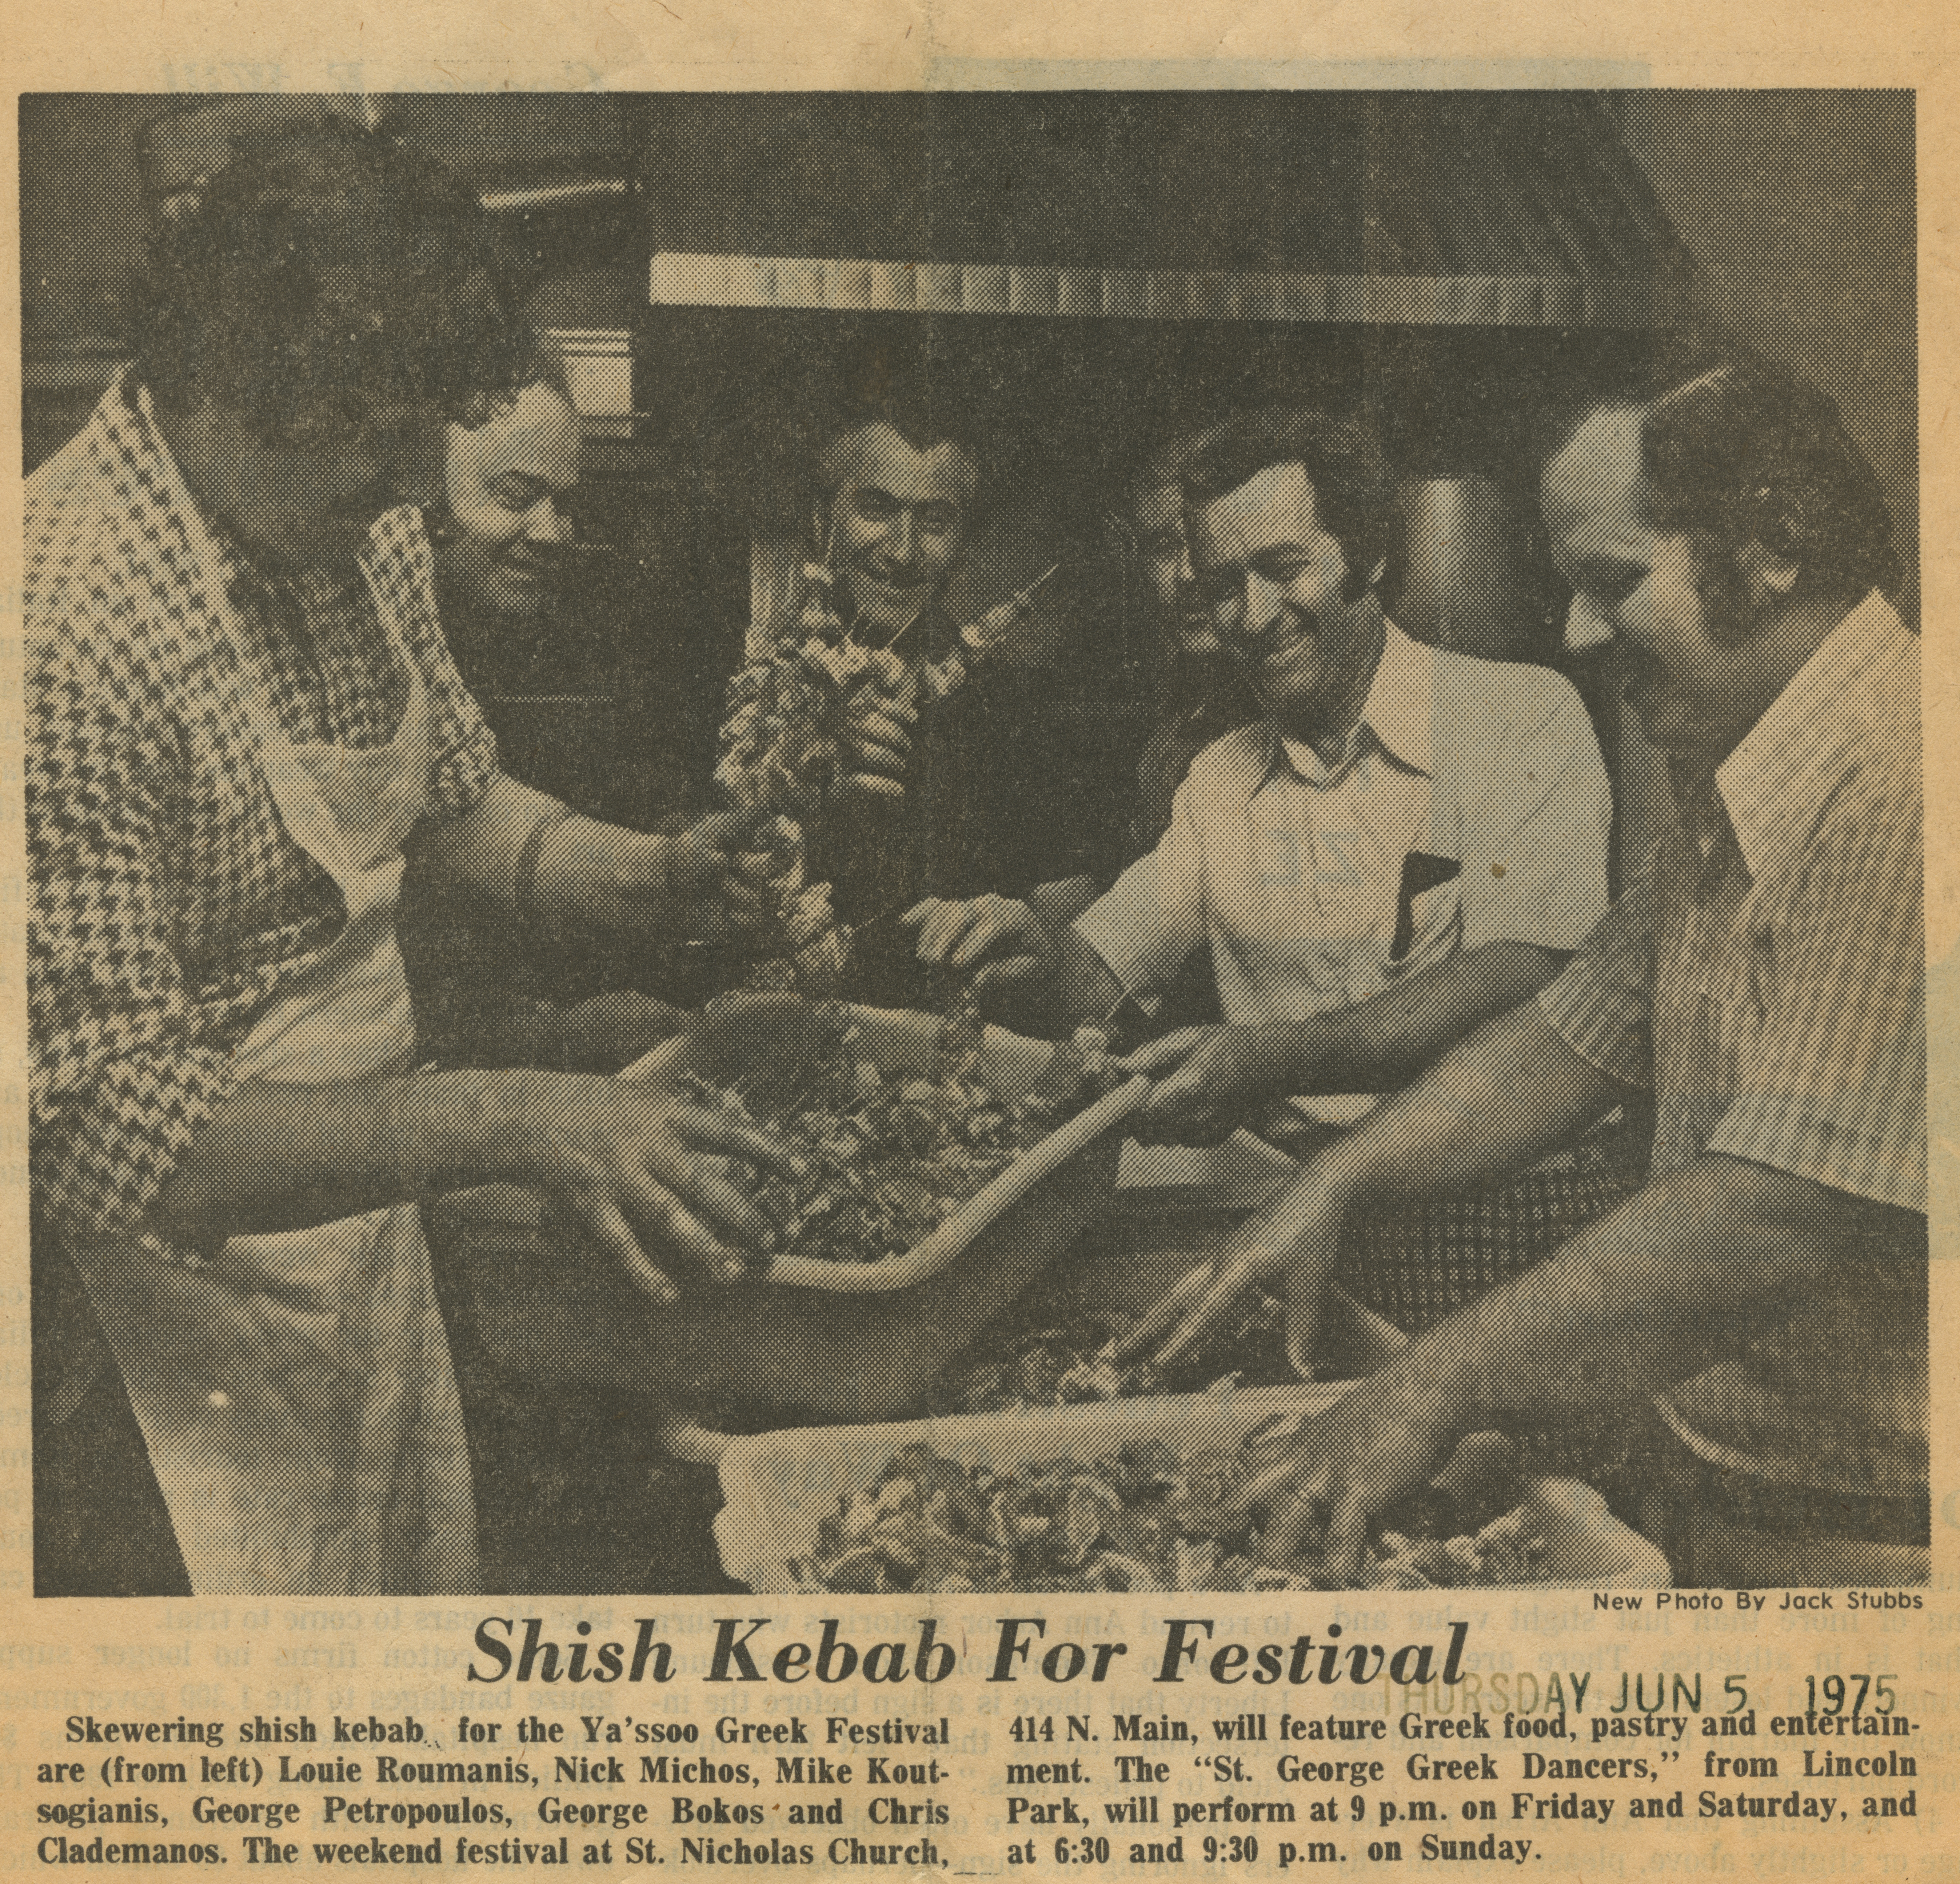 Shish Kebab For Festival image